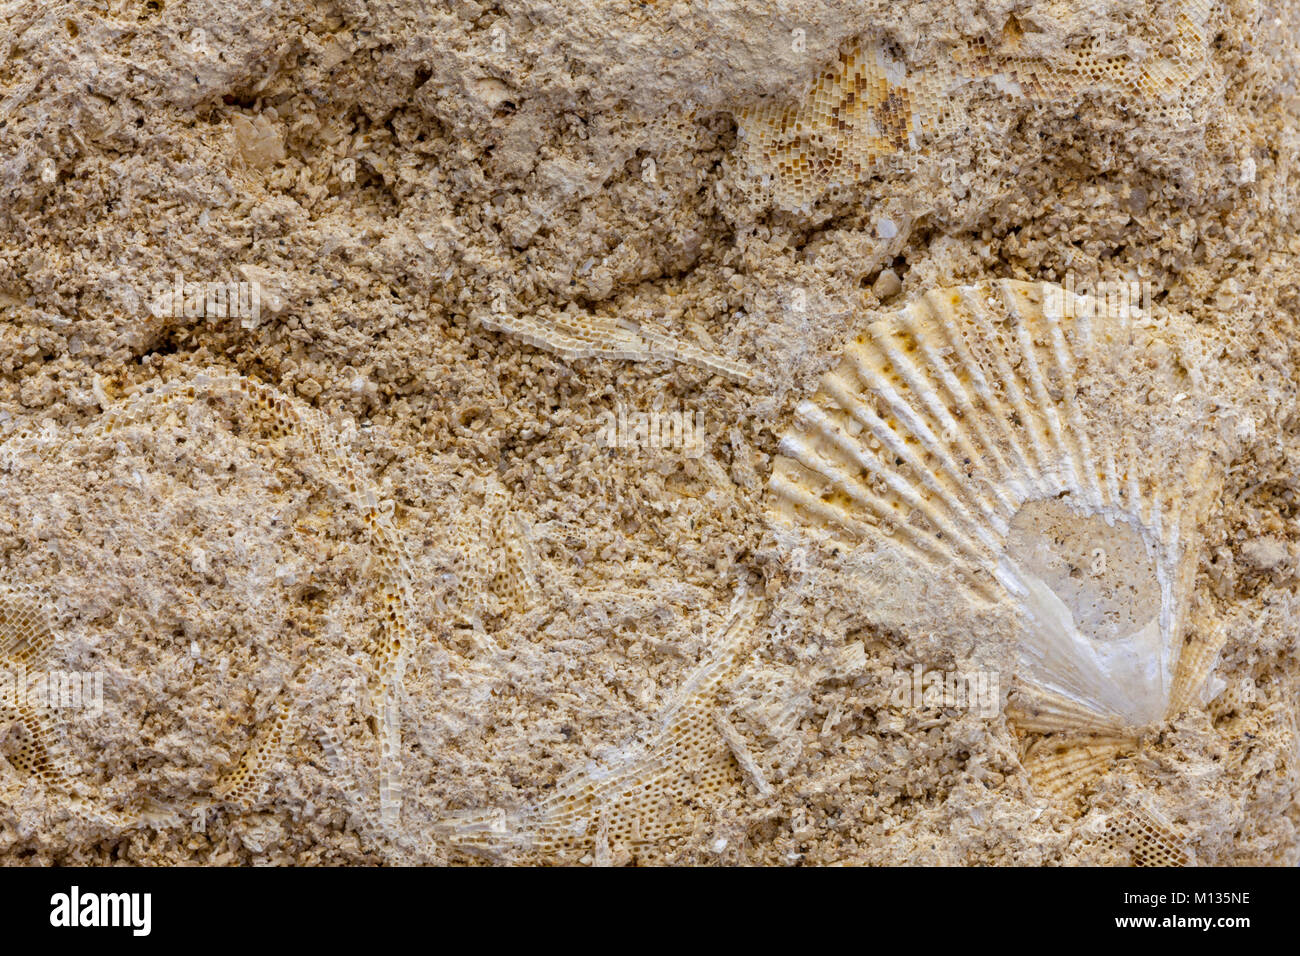 Detail of marine bryozoan fossils containing multiple specimins Stock Photo